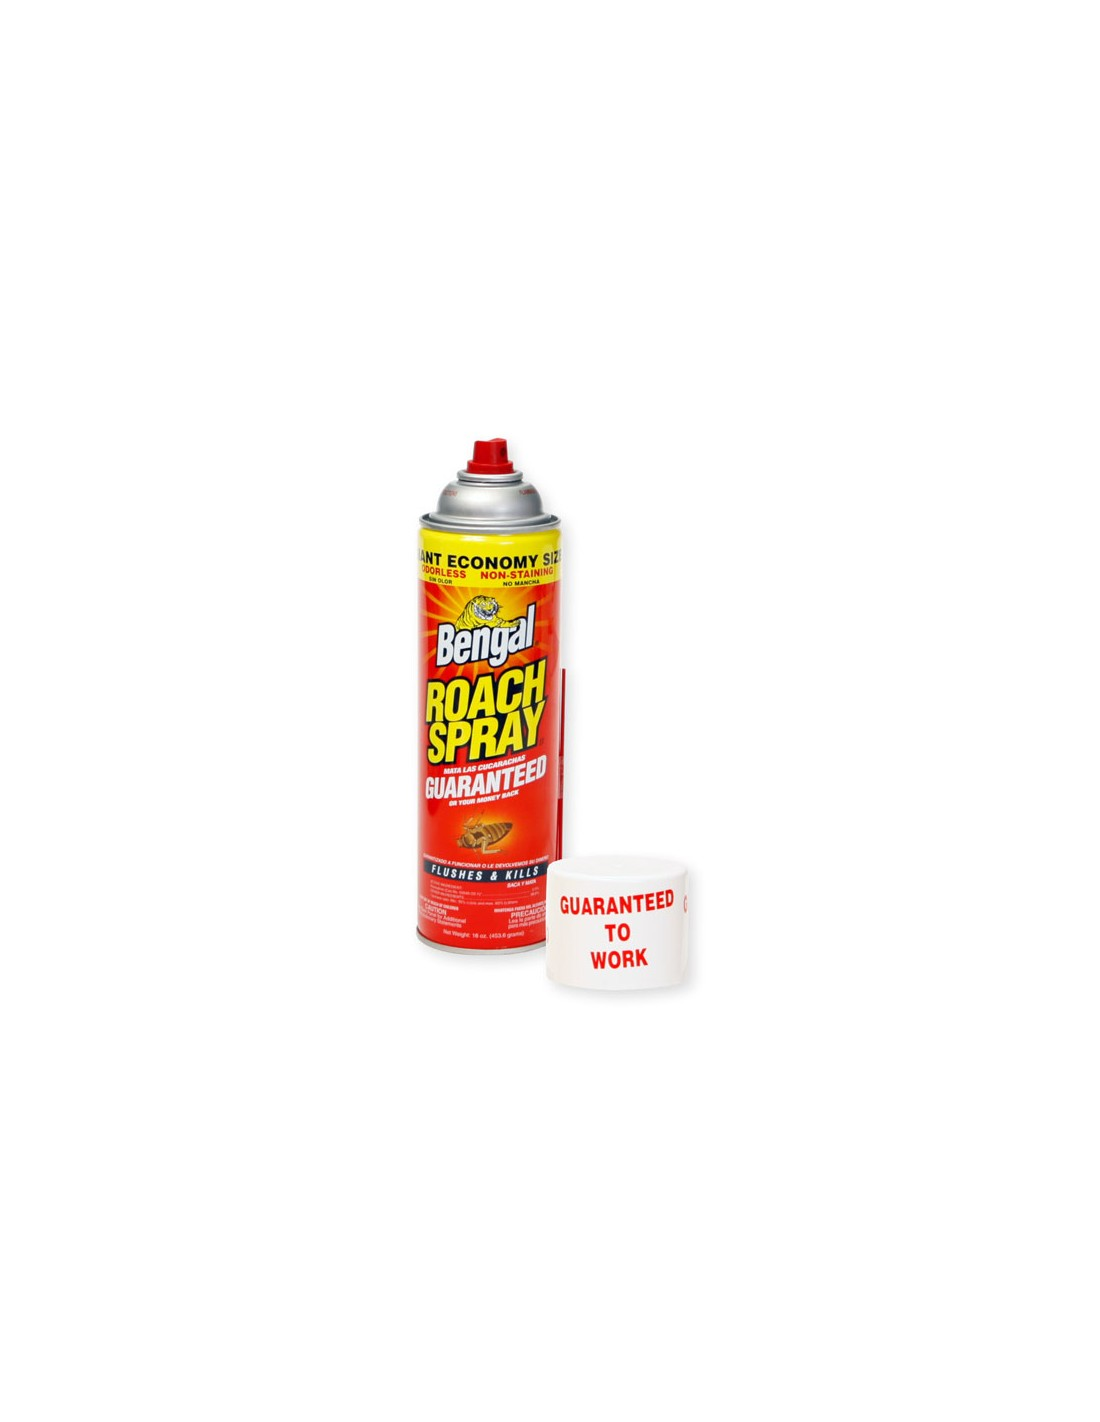 Bengal Roach Spray Questions & Answers